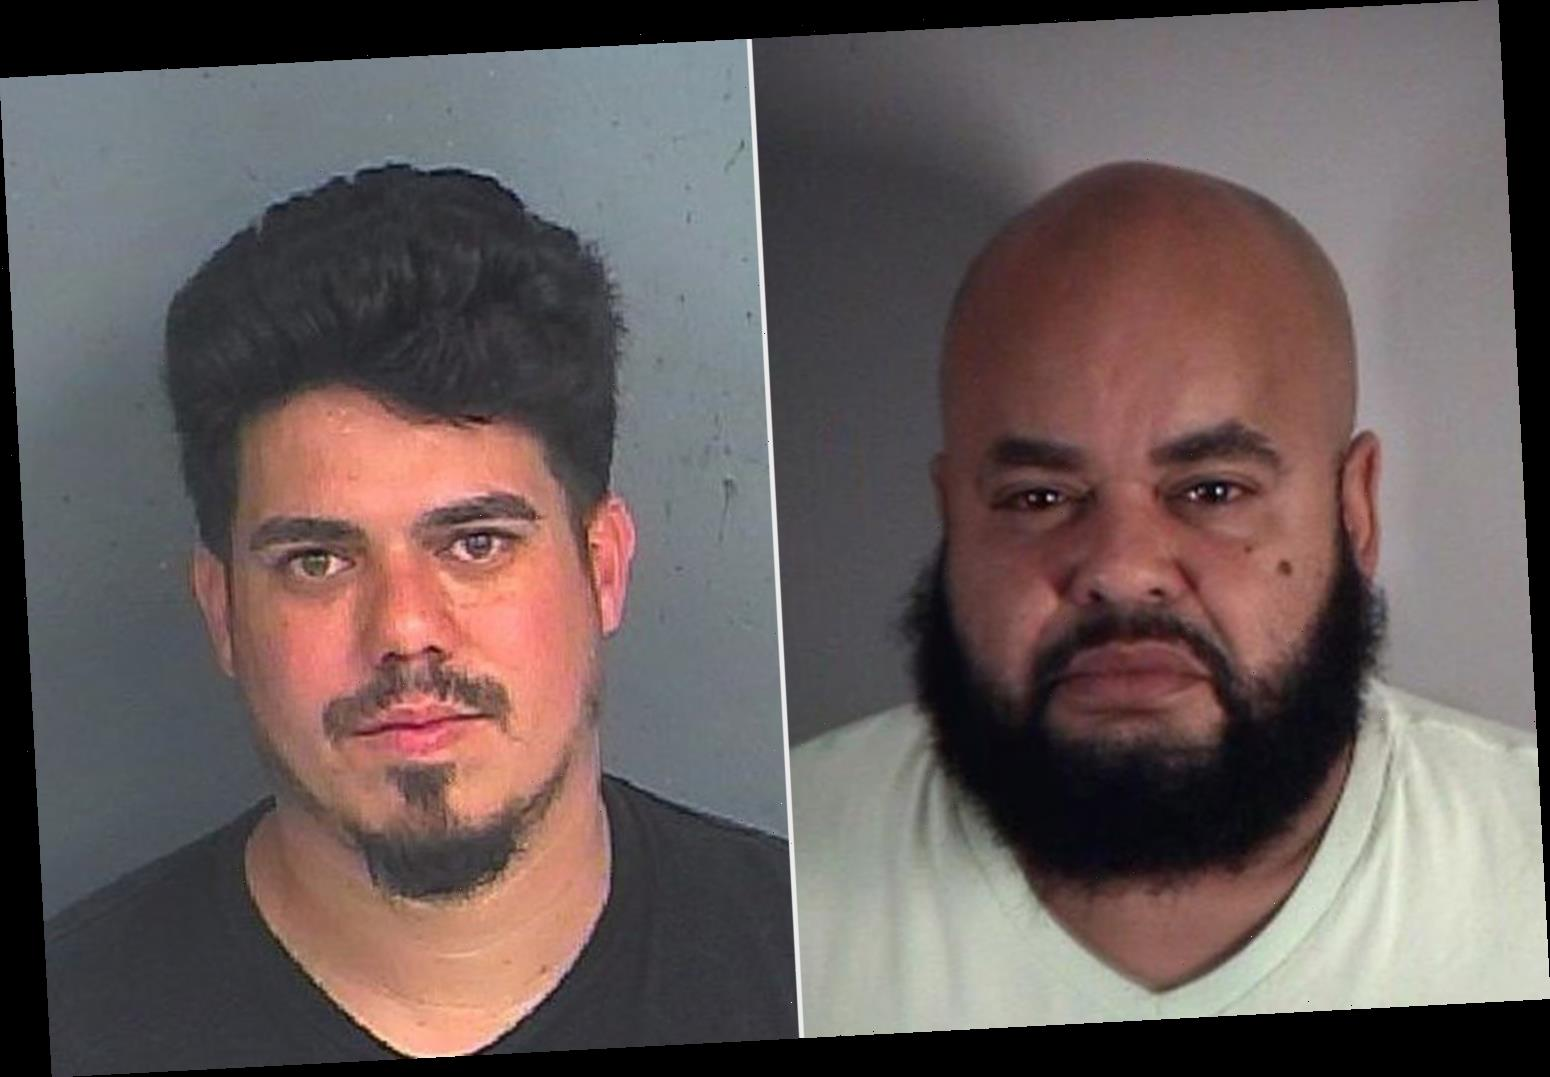 2 Men Arrested After TikTok Video Shows Allegedly Illegal Surgery Being Performed on Pregnant Dog